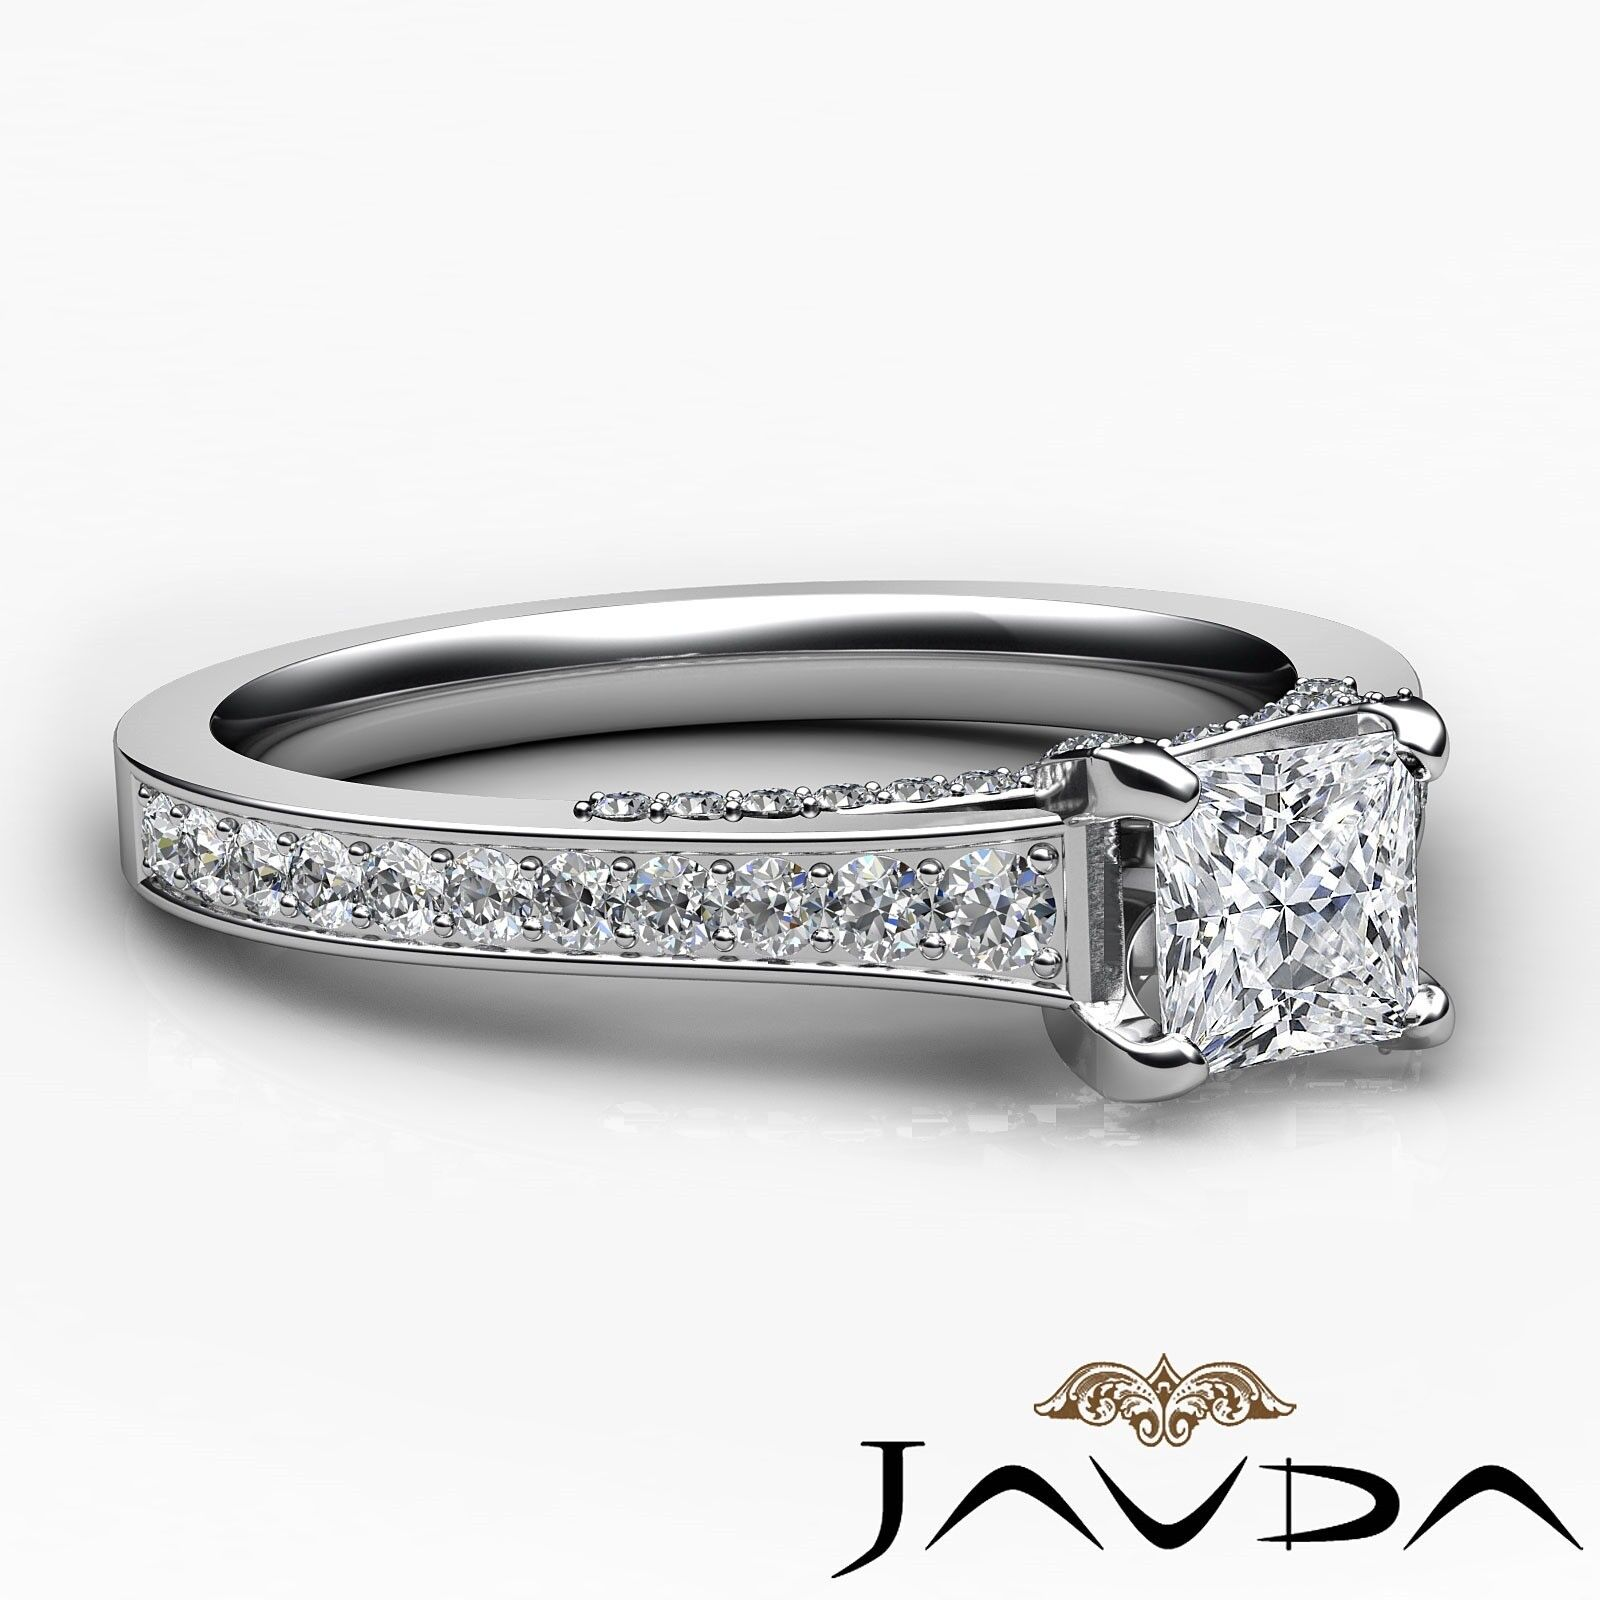 1.46ctw Tapered Pave Princess Diamond Engagement Ring GIA G-VS2 White Gold Rings 5